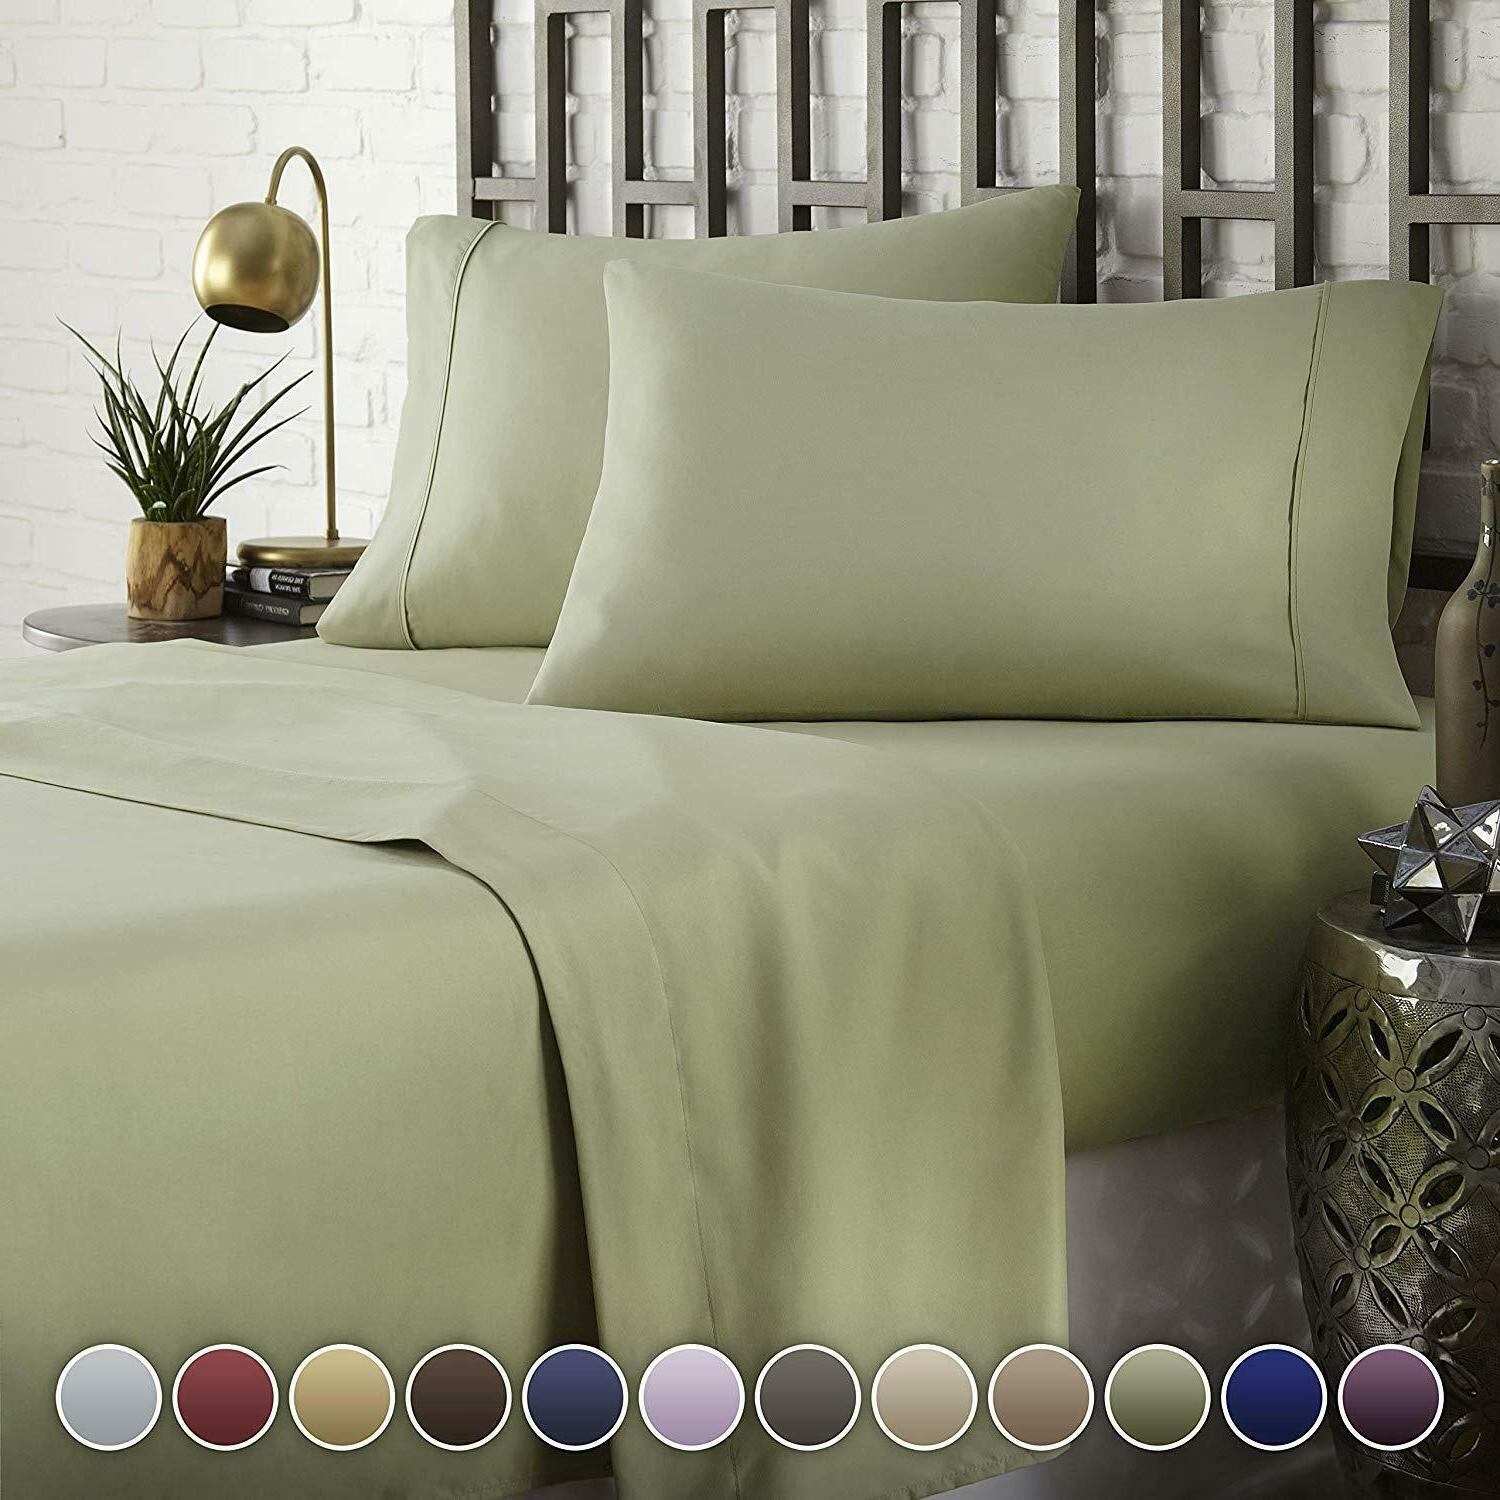 Hotel Bed Sheets Hypoallergenic Pillowcase